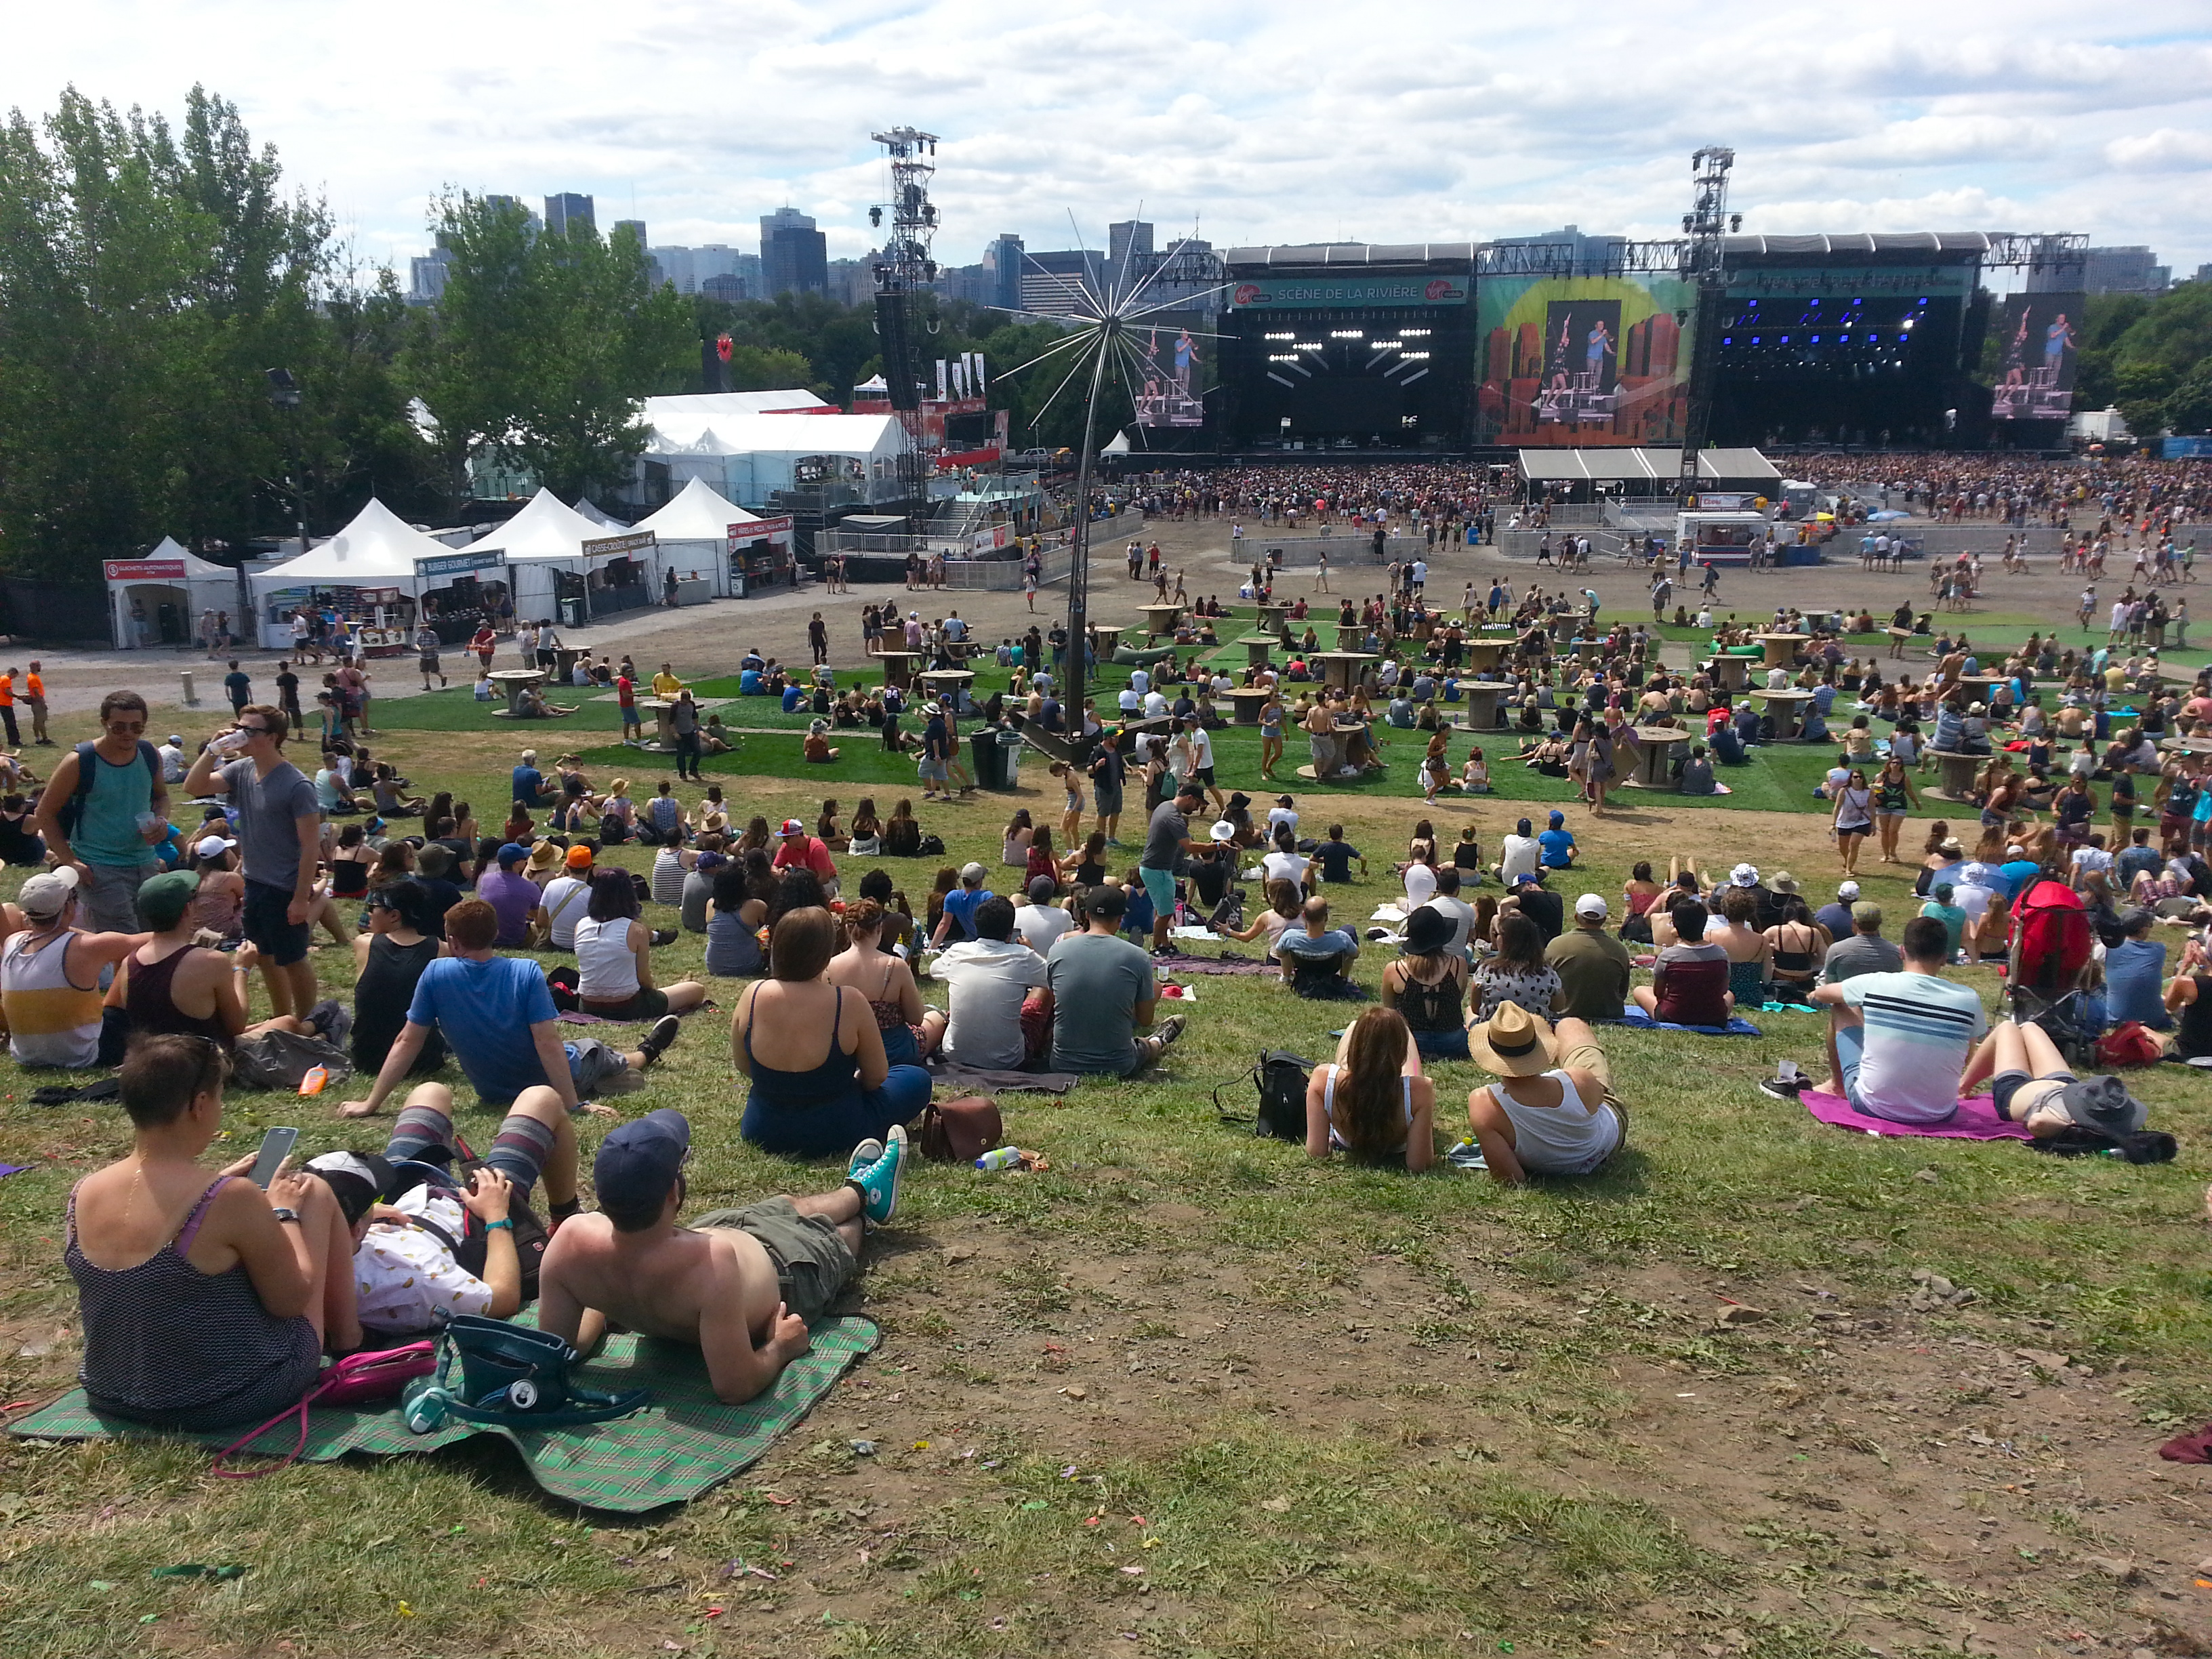 Day 2: Hanging on the hill, waiting for July Talk to start